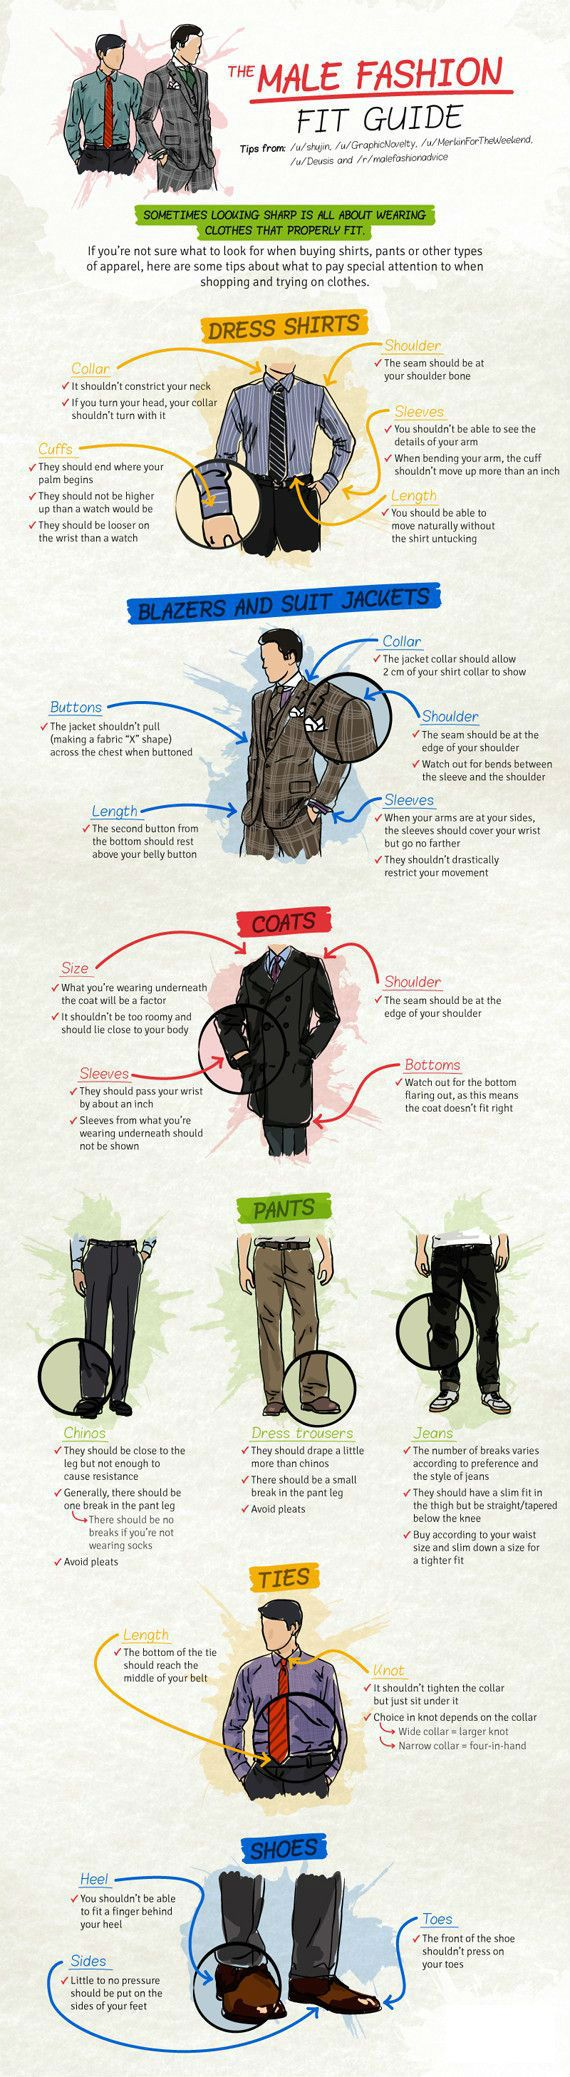 22 Best Business Casual For Him Images On Pinterest Clothing Casual Looks And Costumes